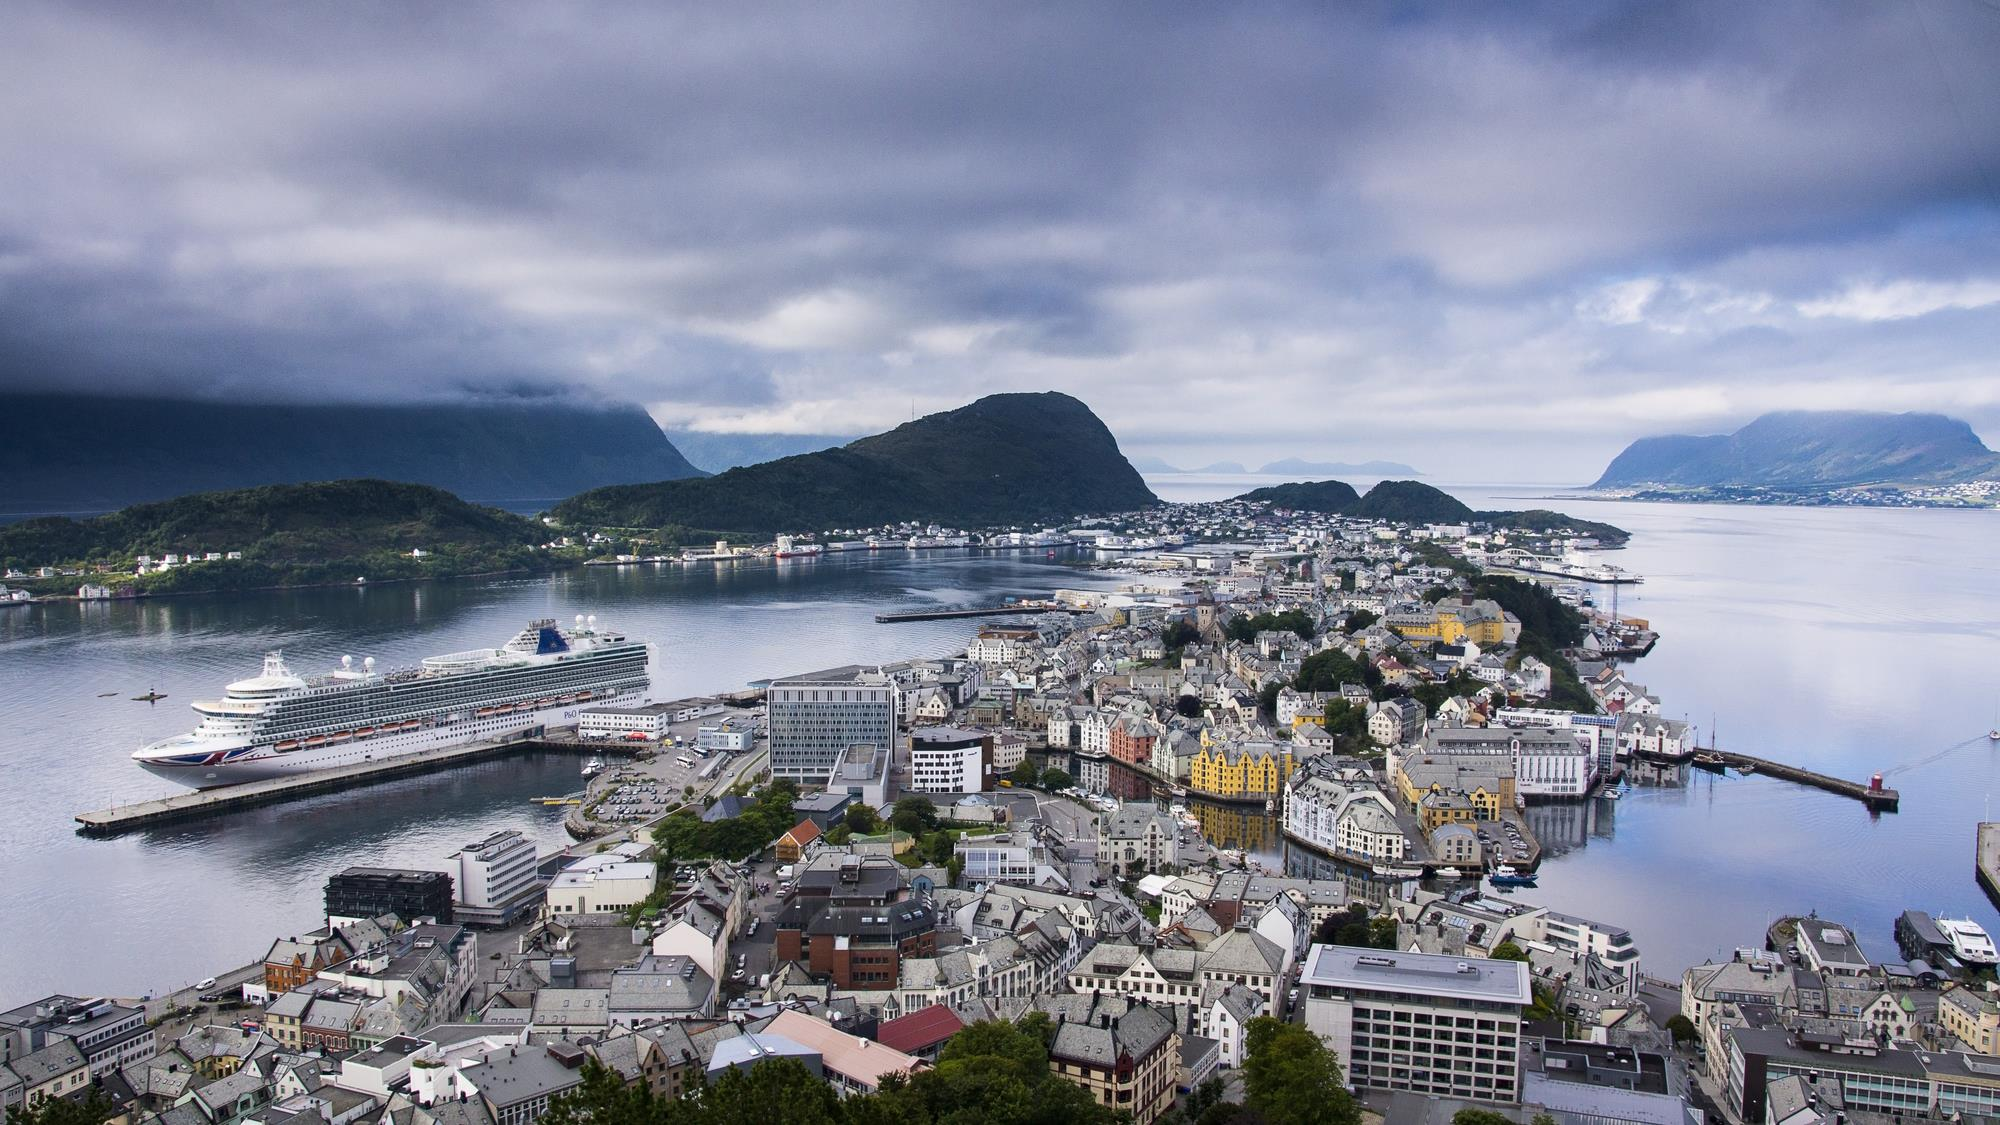 Alesund, Norway from Aksla